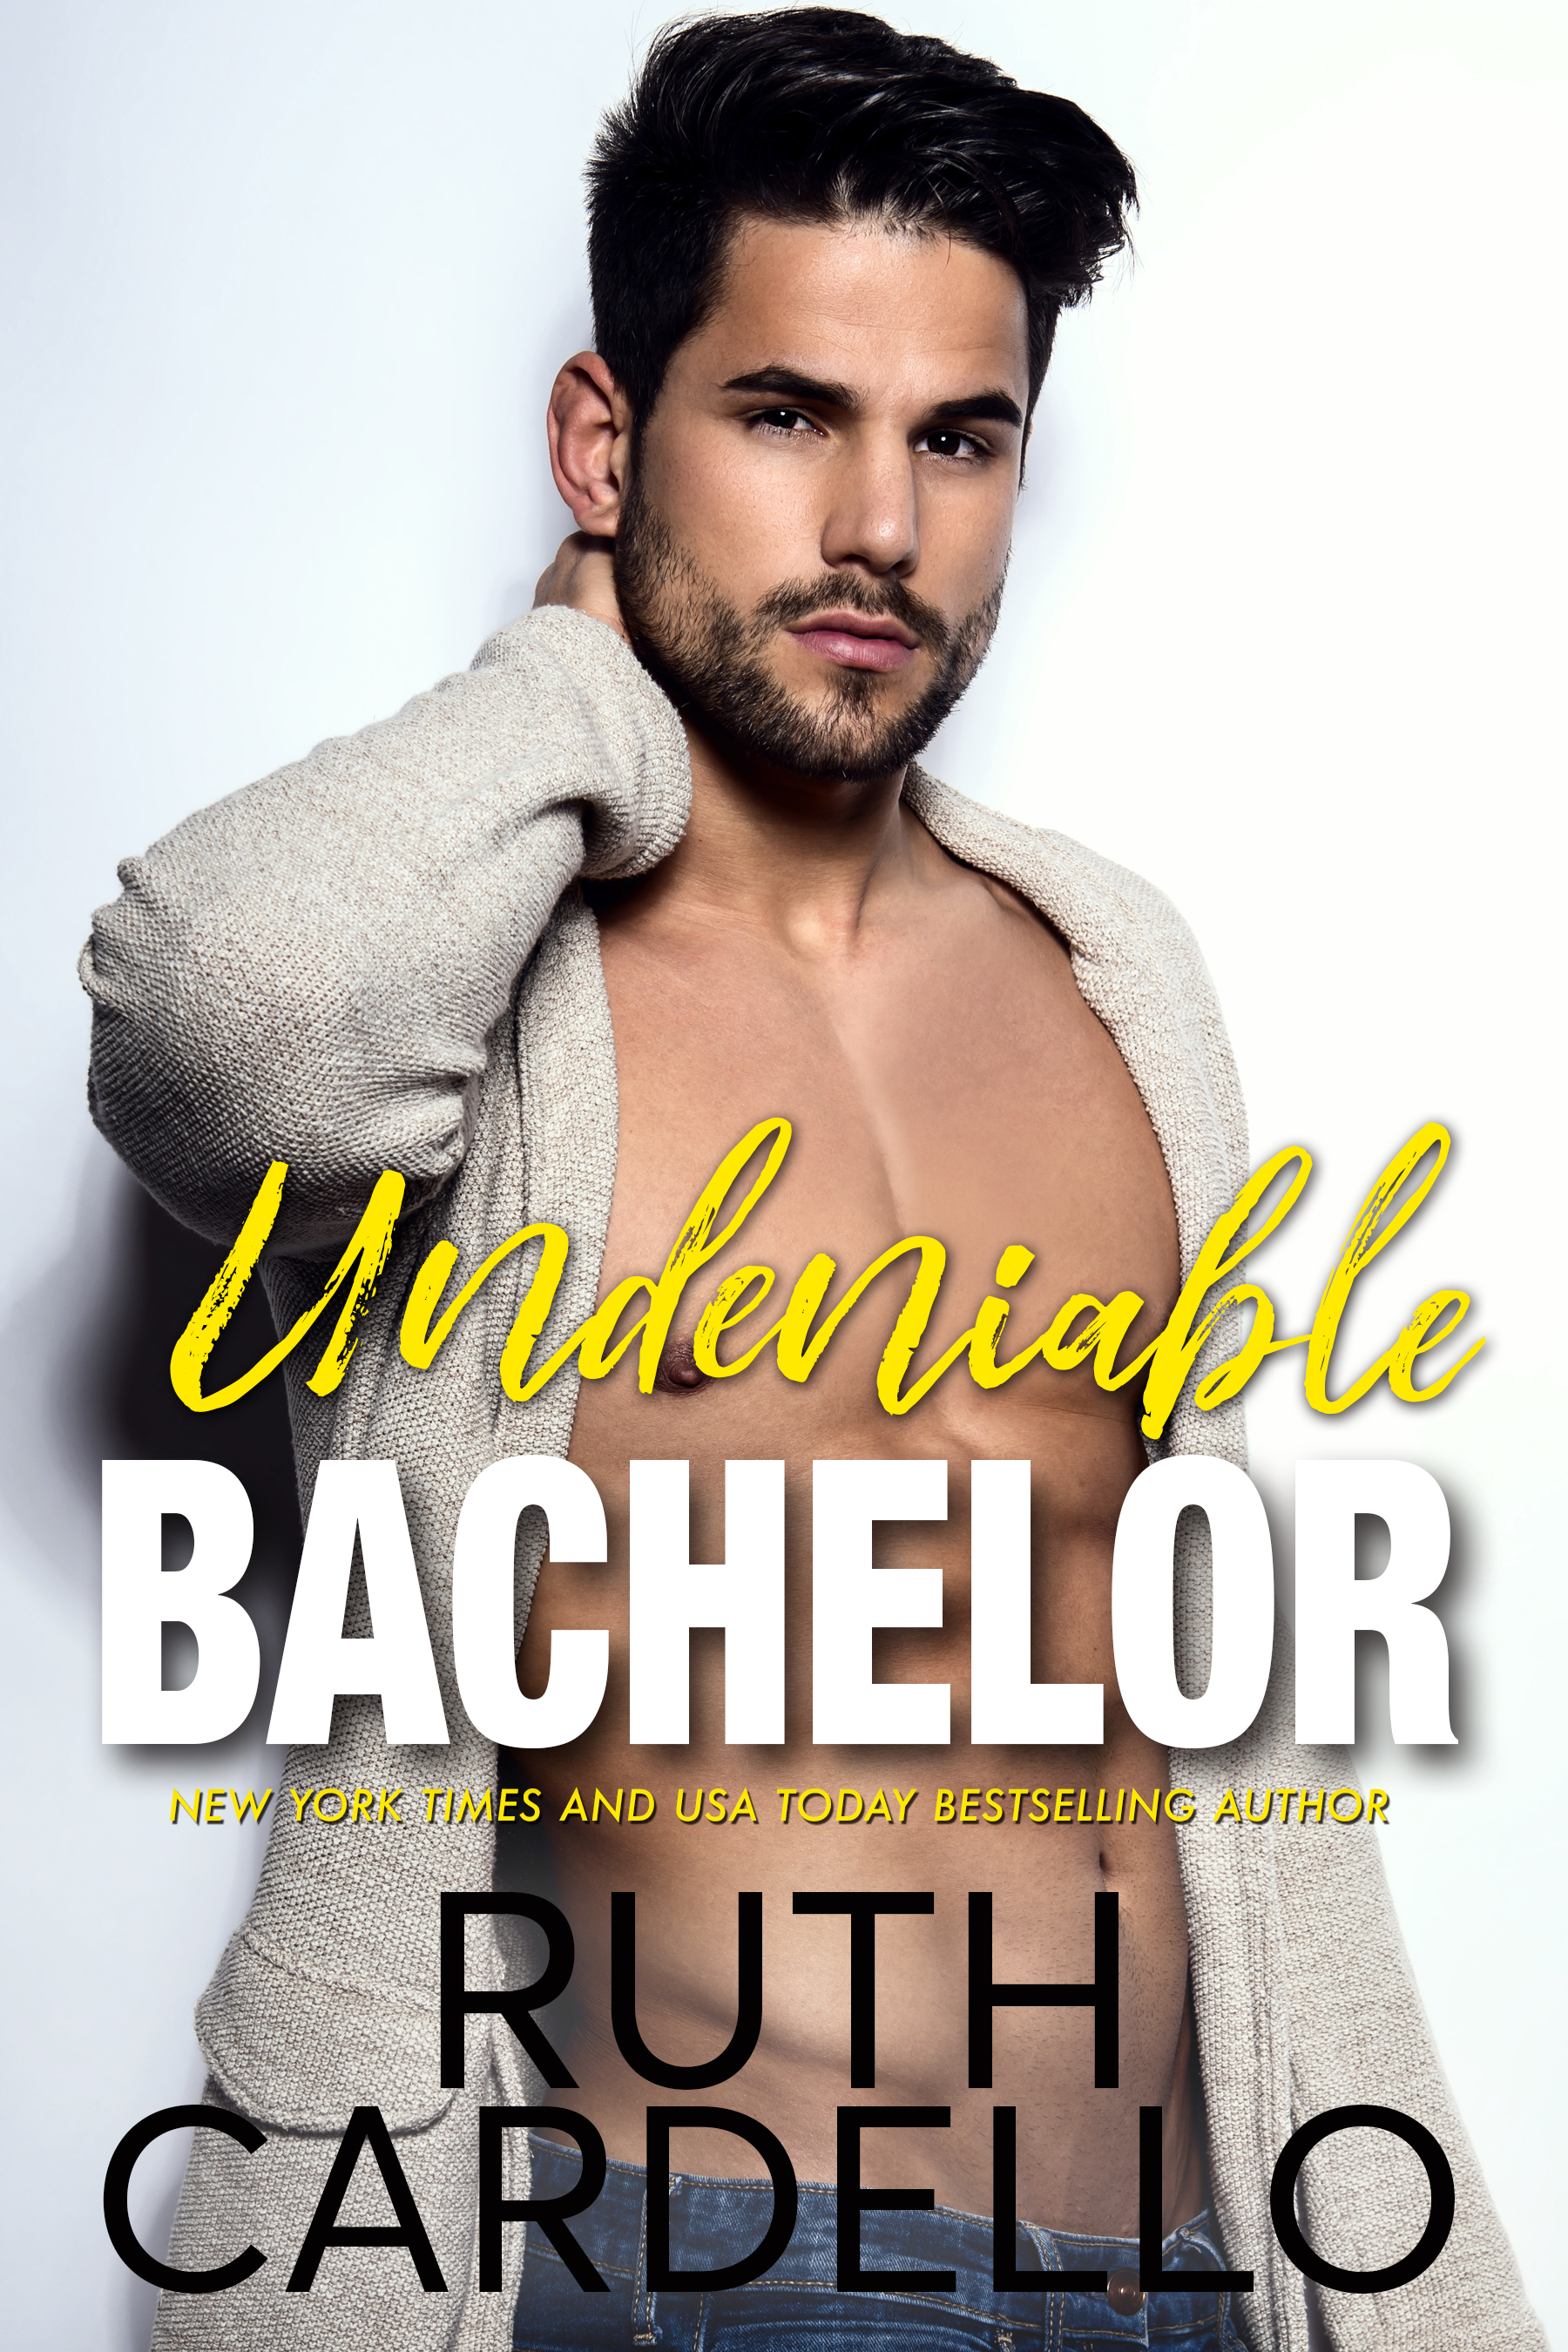 Undeniable Bachelor